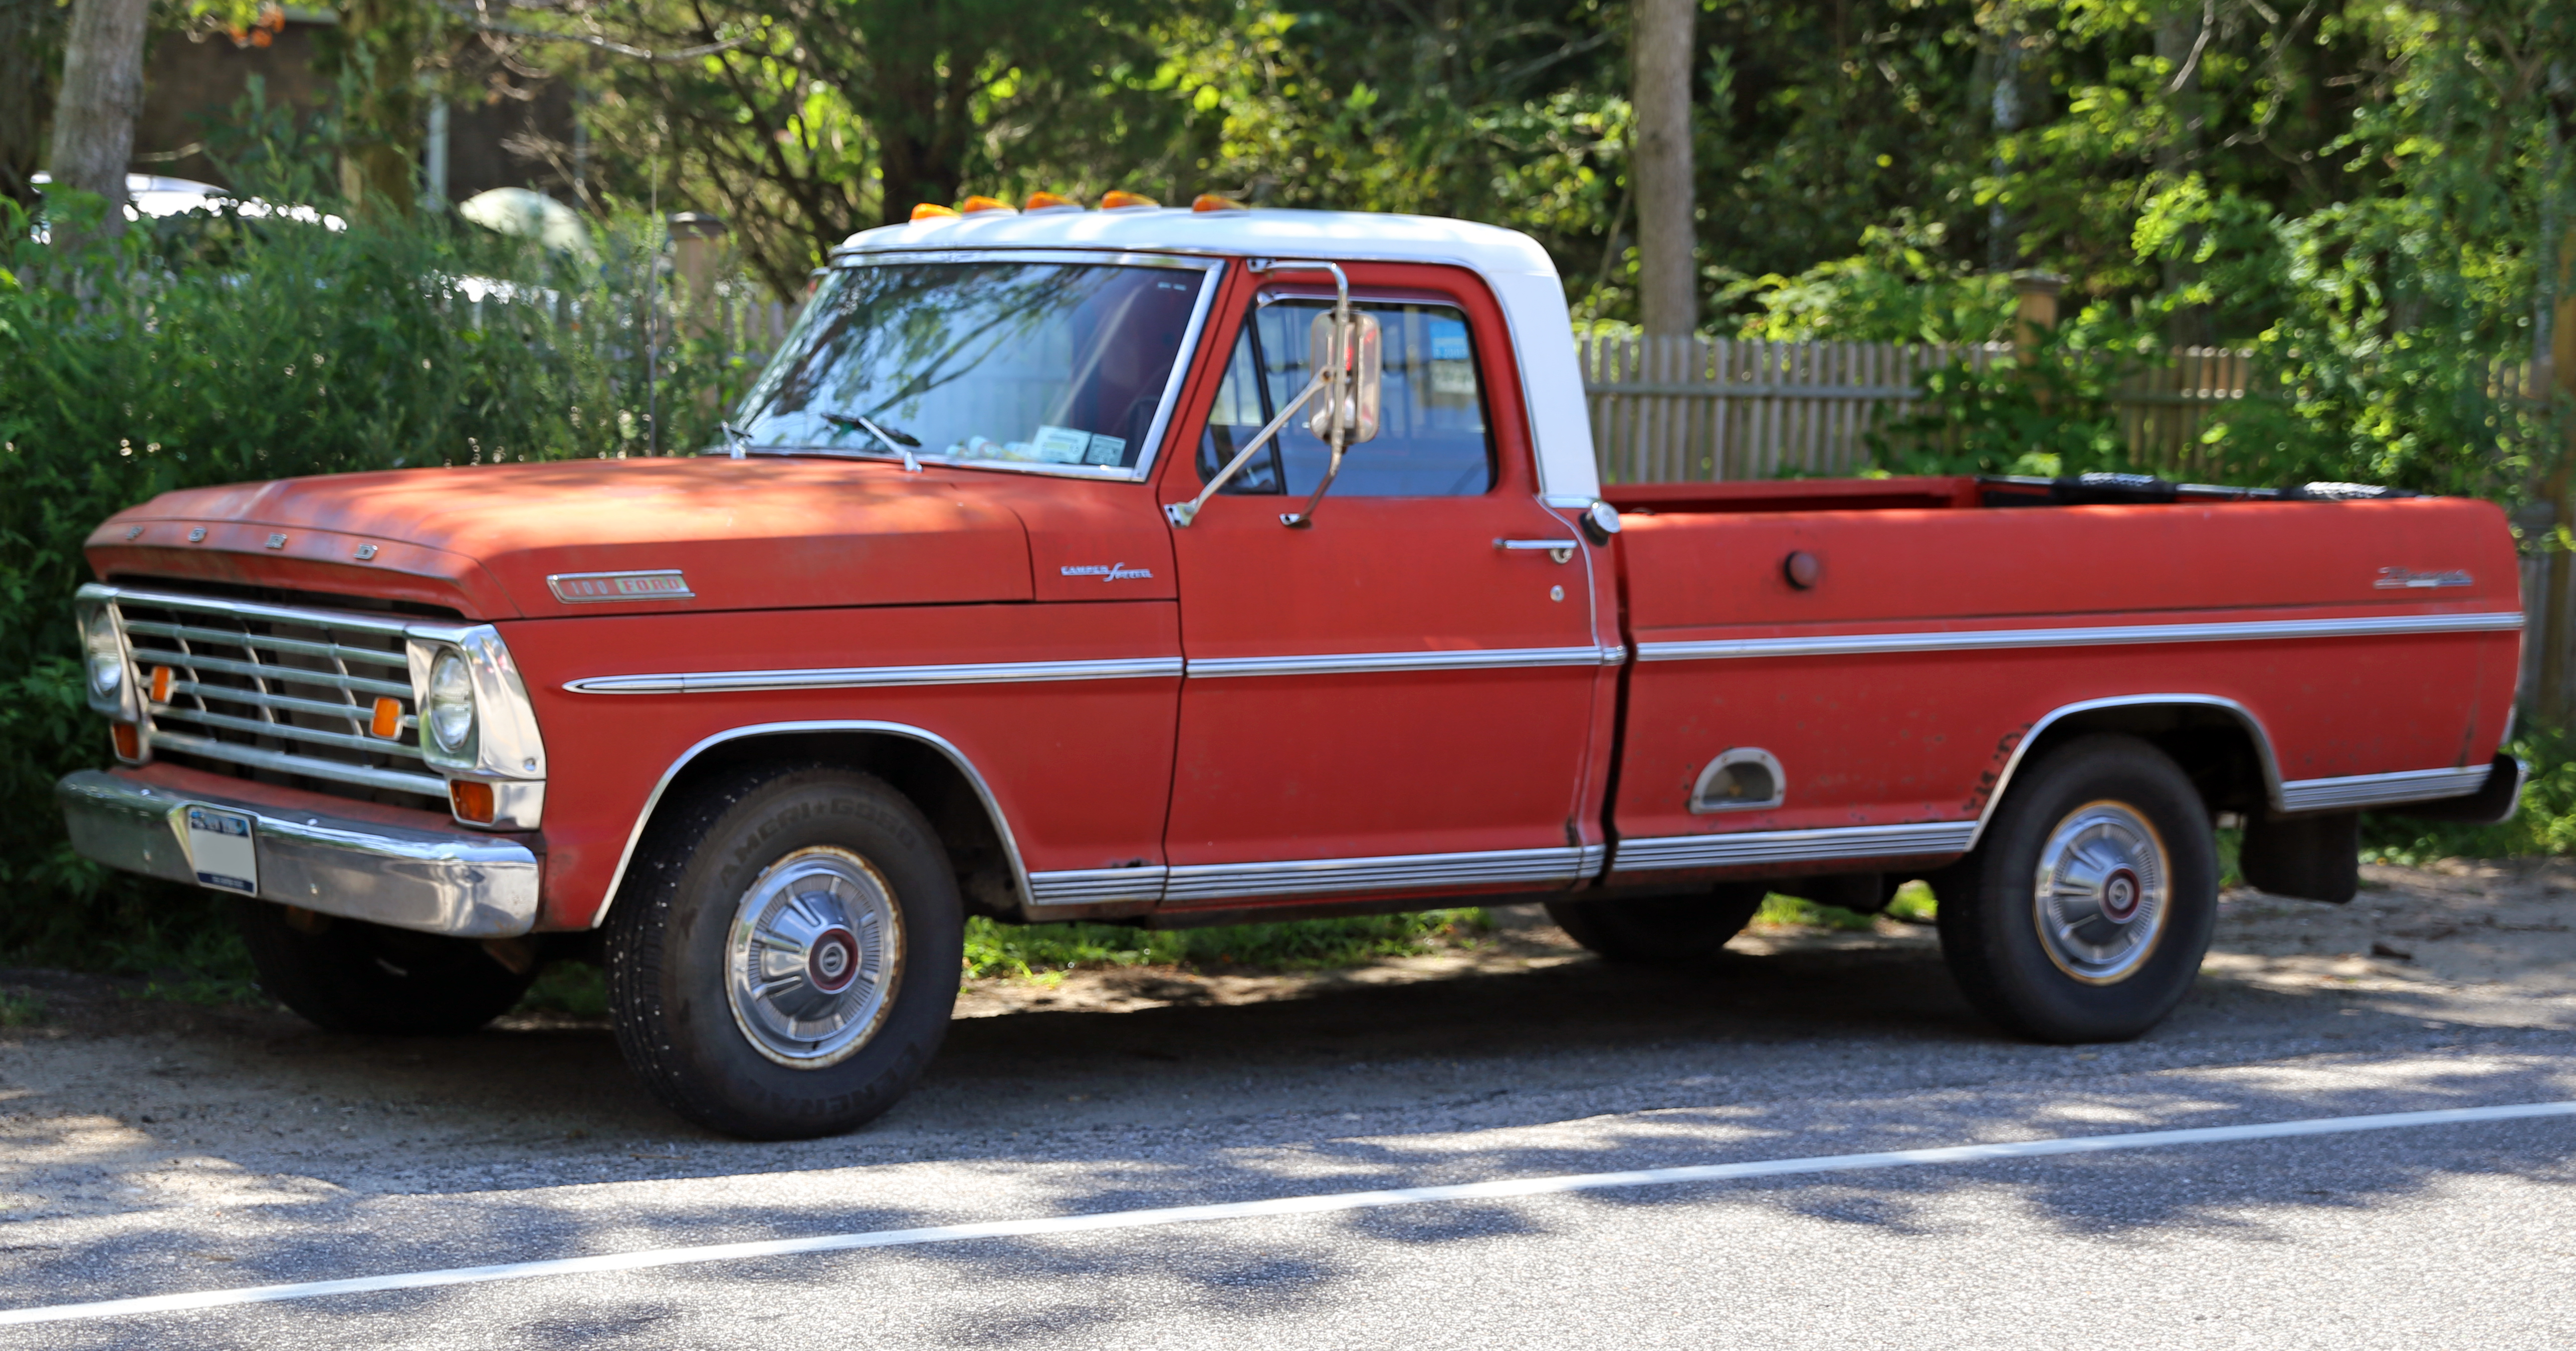 File:1967 Ford F-100 Ranger Camper Special.jpg - Wikimedia Commons